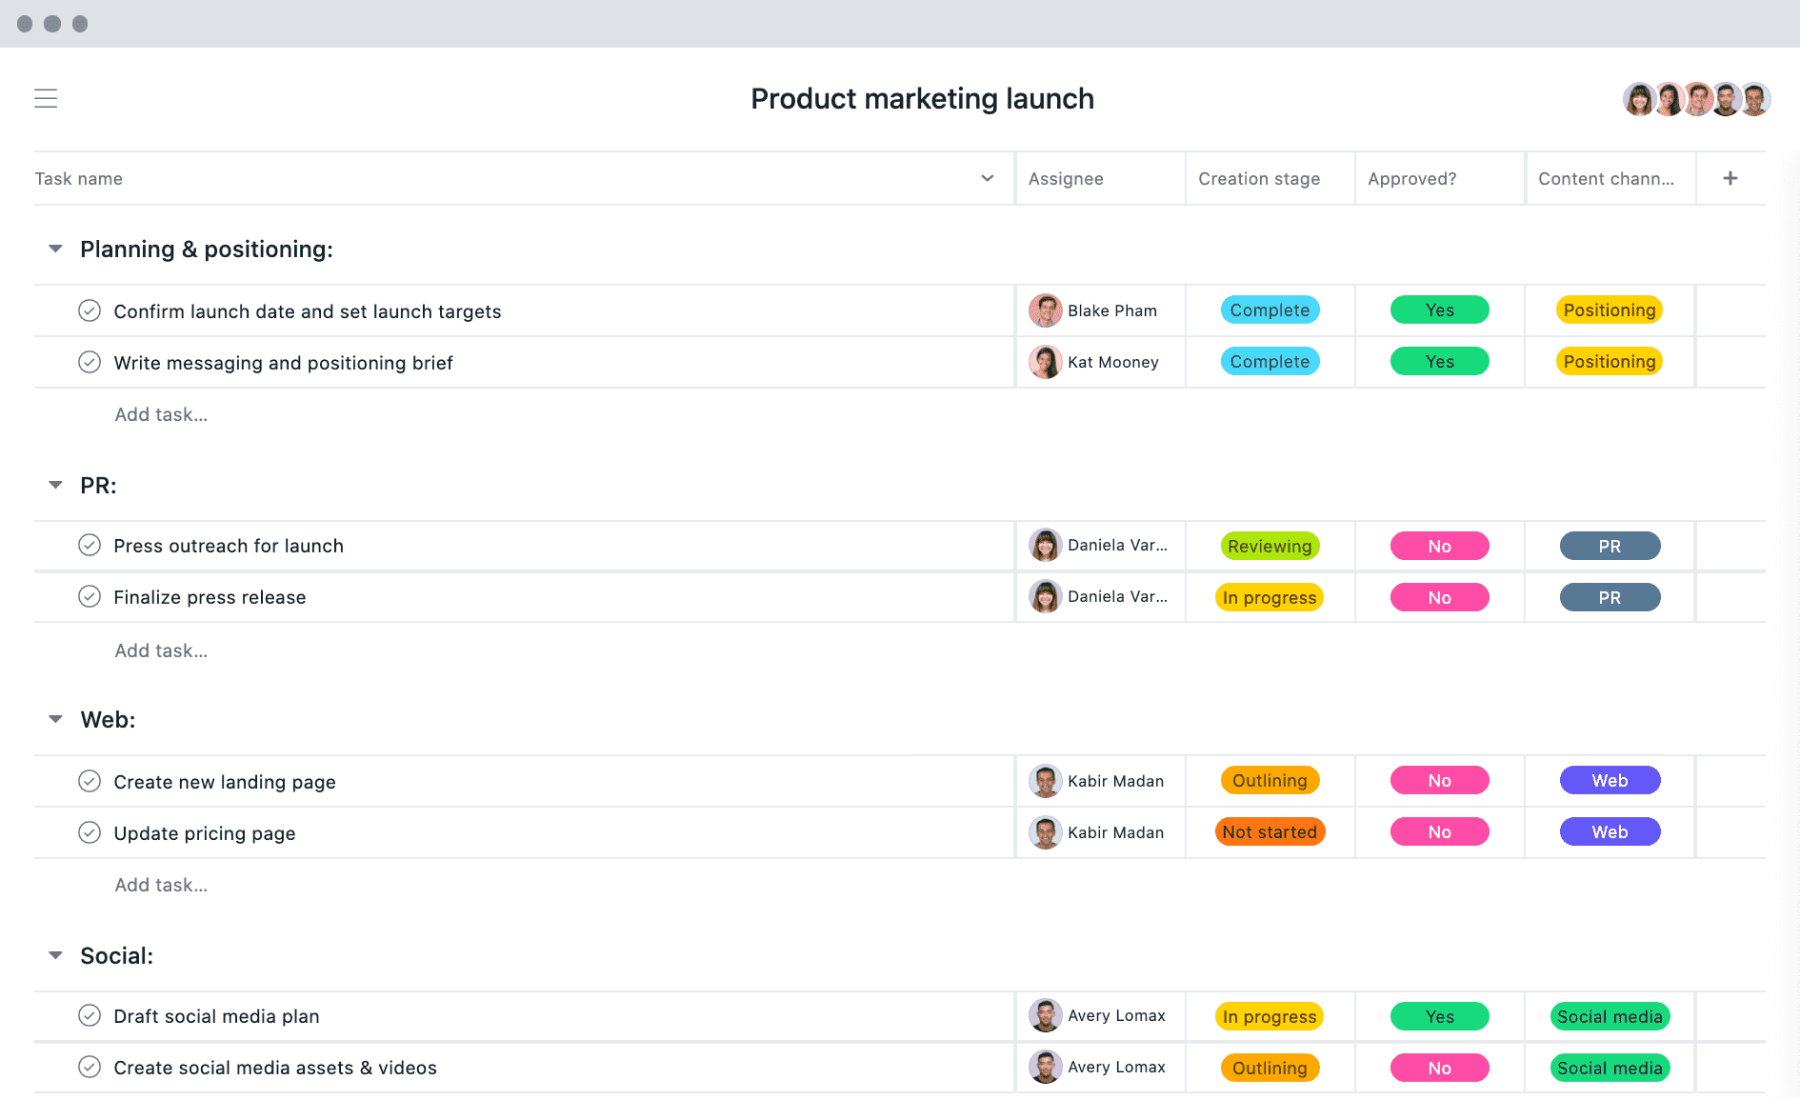 [List view] Product marketing launch project in Asana, spreadsheet-style view with project deliverables